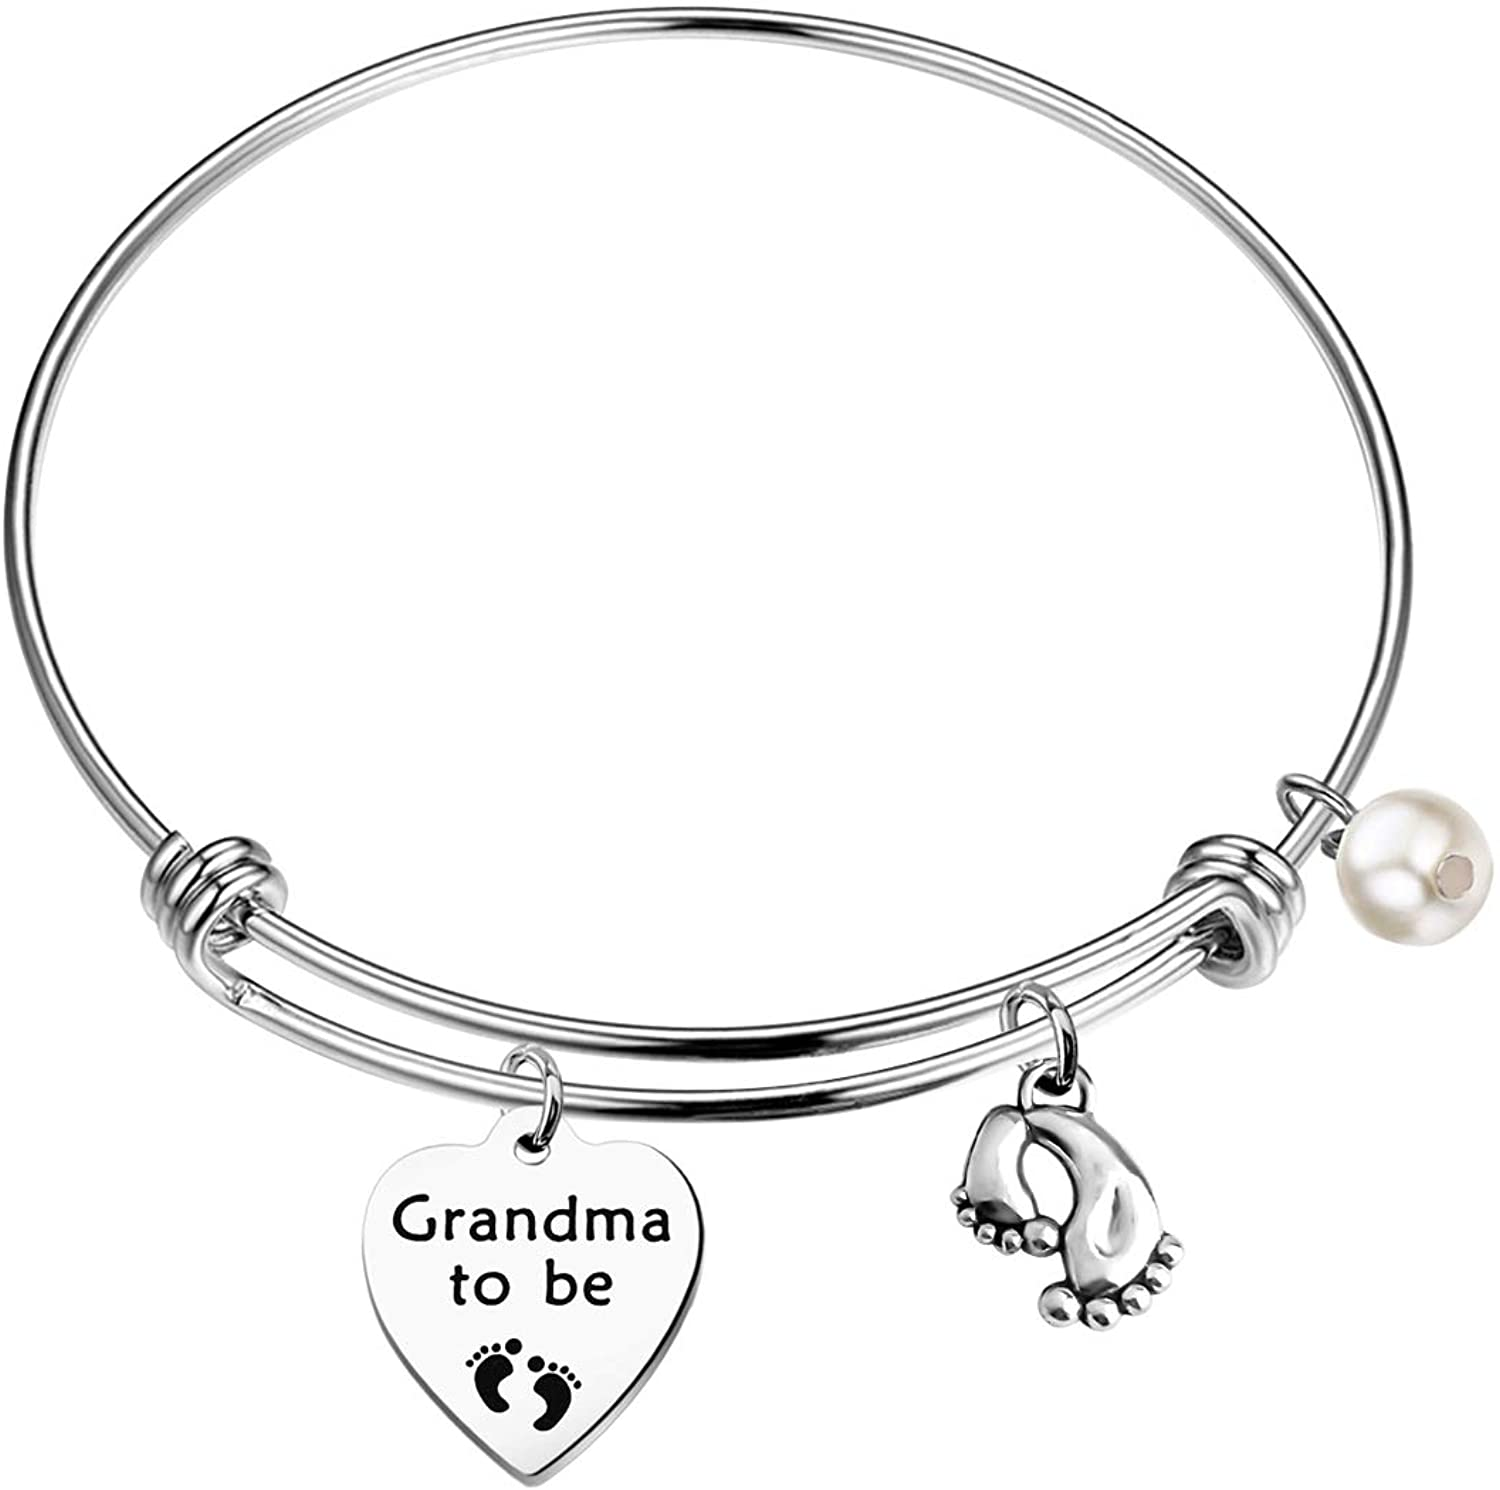 SEIRAA New Grandma Gift Grandma to Be Bracelet New Baby Gift Pregnancy Reveal Jewelry Announcement Gift for Grandmother